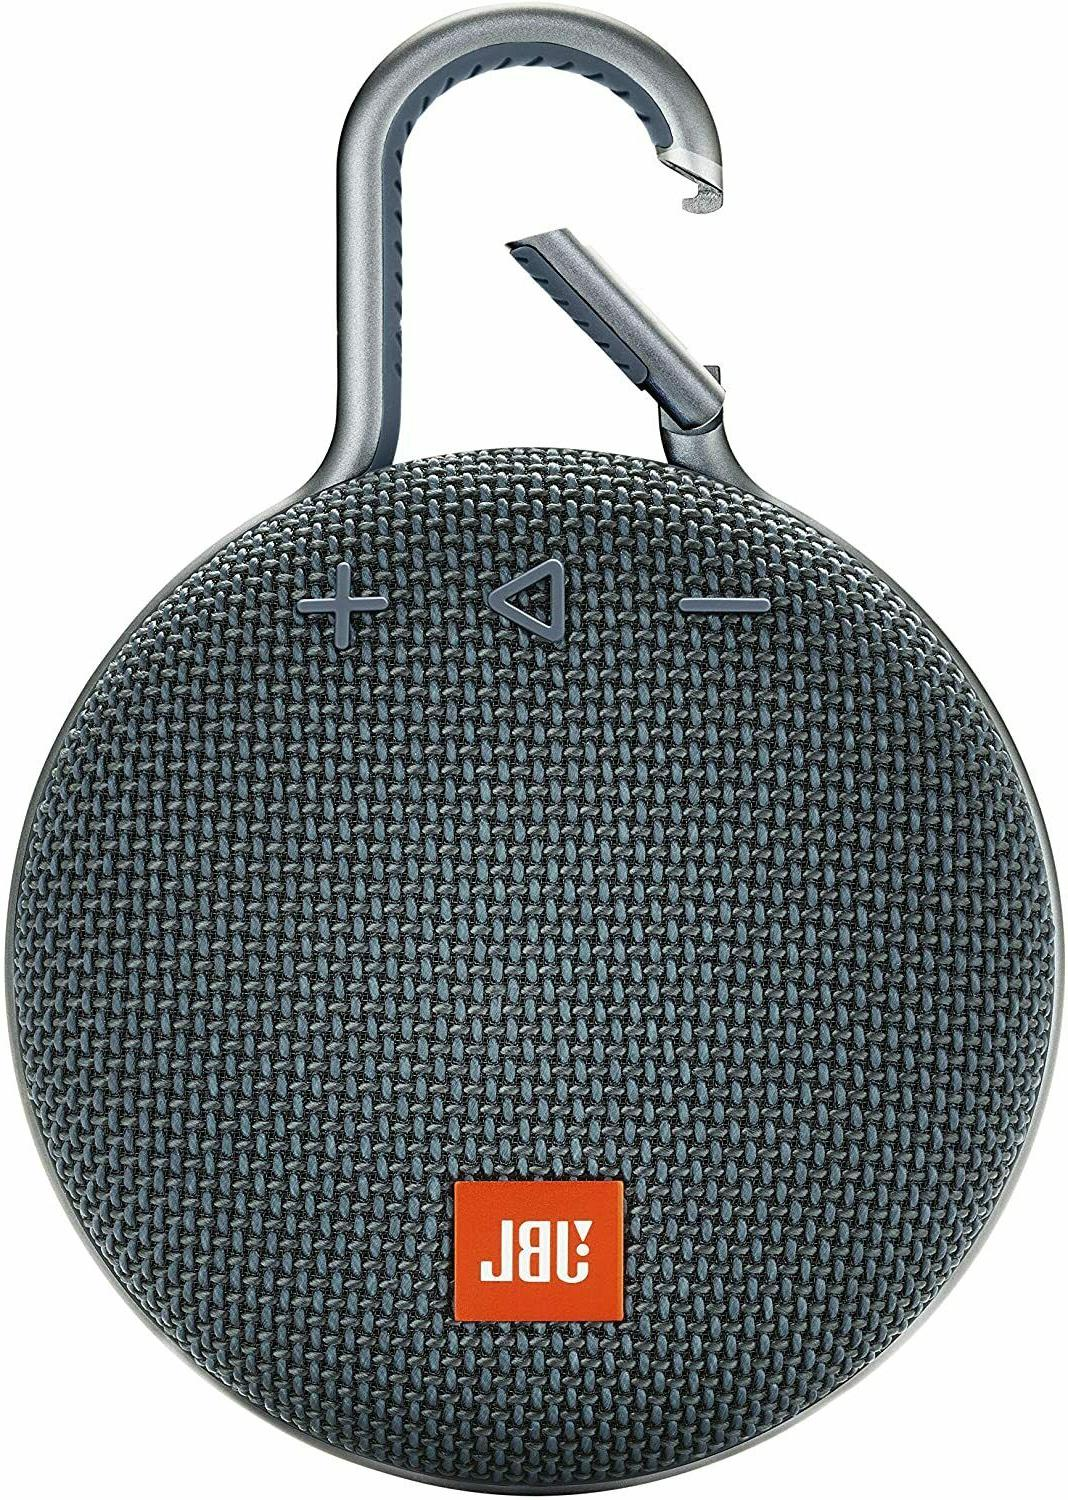 JBL Clip Speaker IPX7 Waterproof Portable New